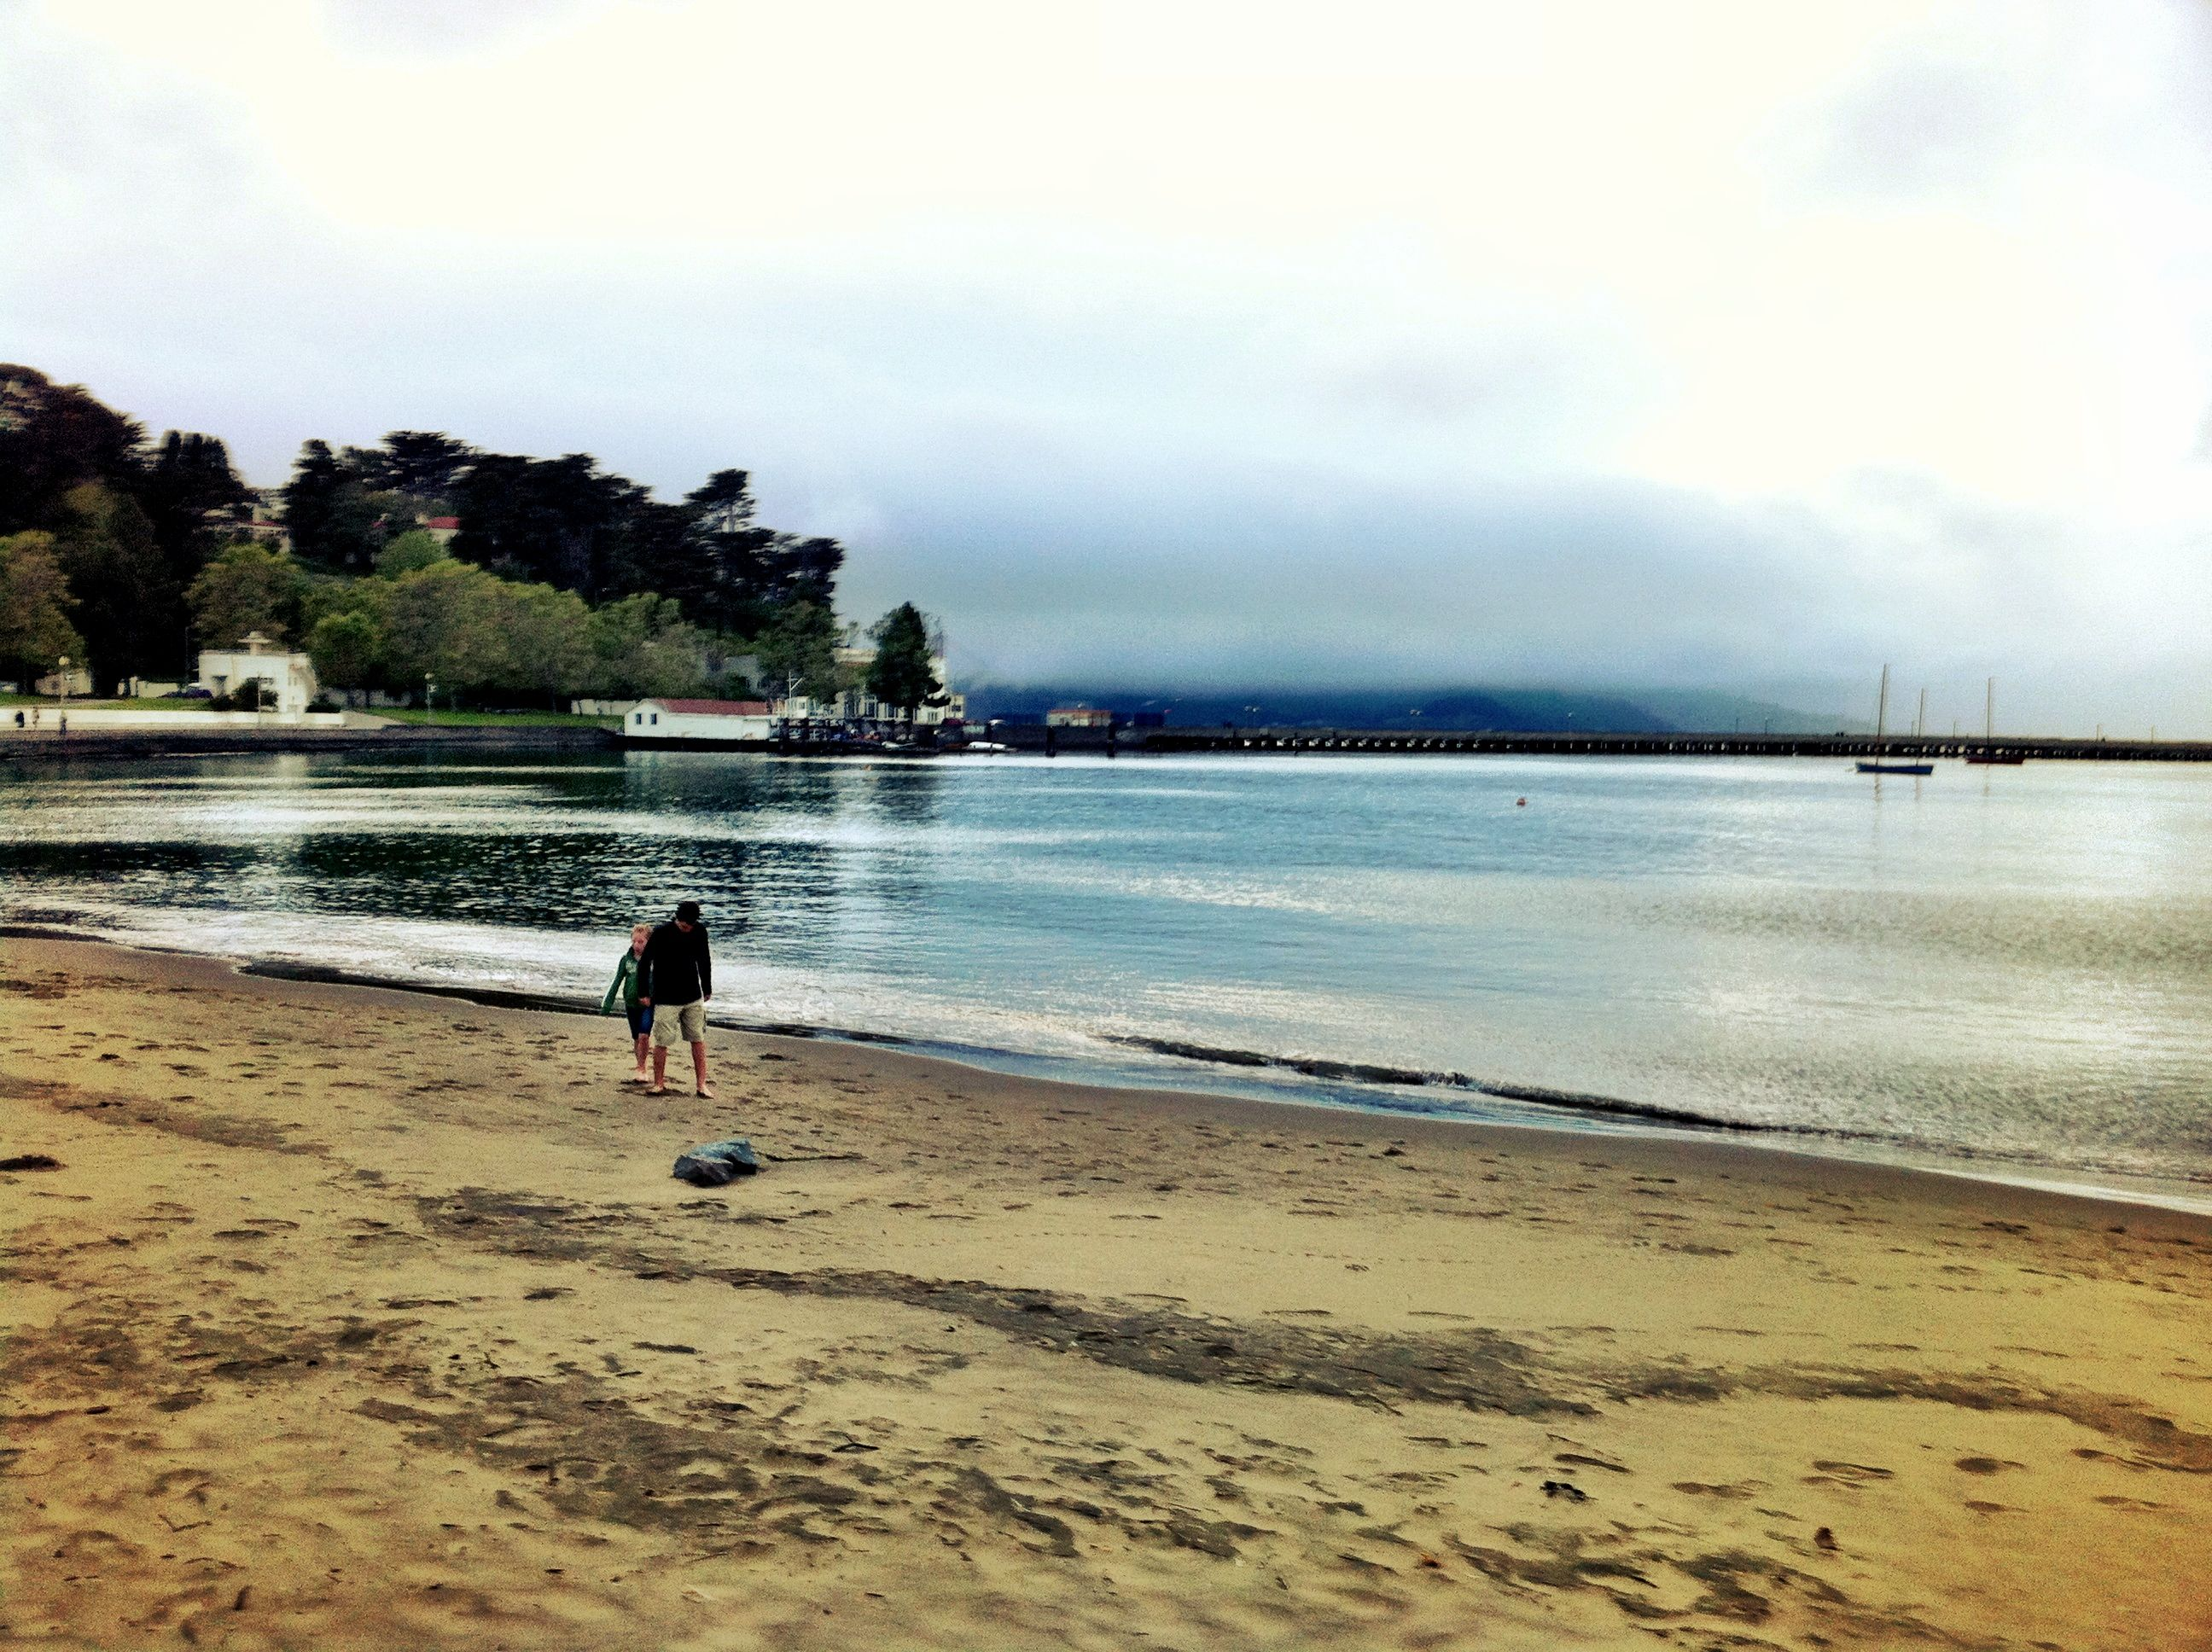 The beach in front of Ghirardelli Square. Walk west from here around that point in the distance to the Golden Gate Bridge or east through Fisherman's Wharf, along the Embarcadero to the Ferry Building. Photo by sarah peck